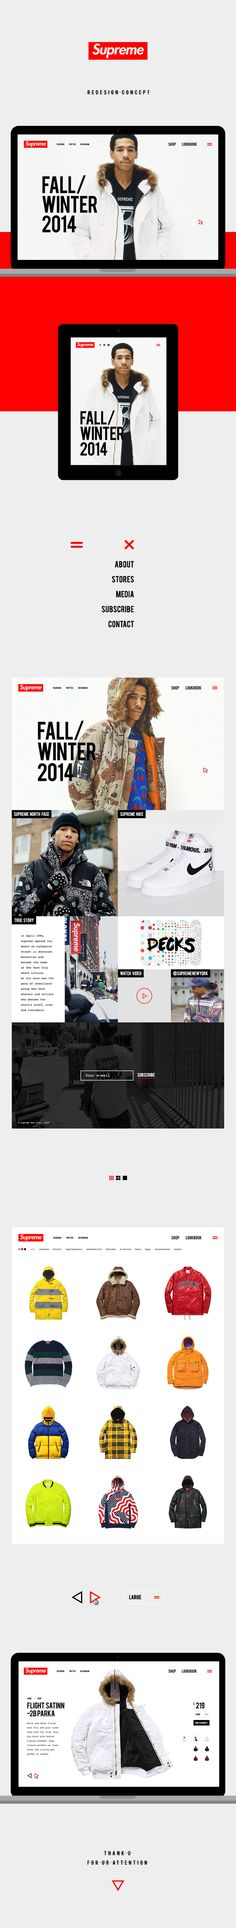 Supreme NY redesign concept on Web Design Served